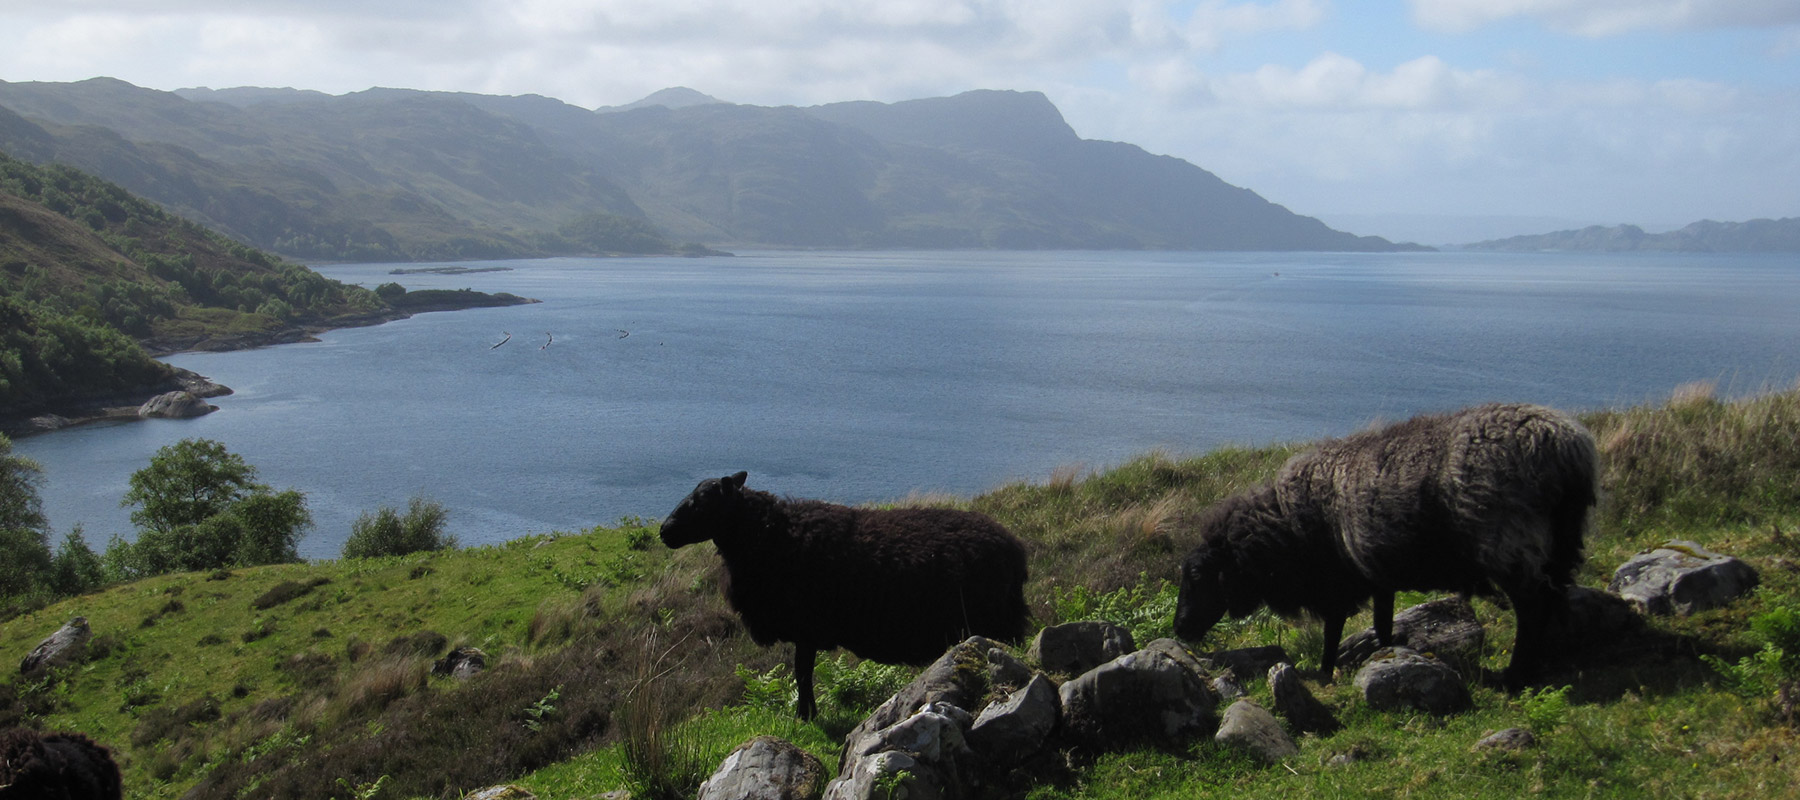 Black Welsh Mountain sheep, Loch Nevis